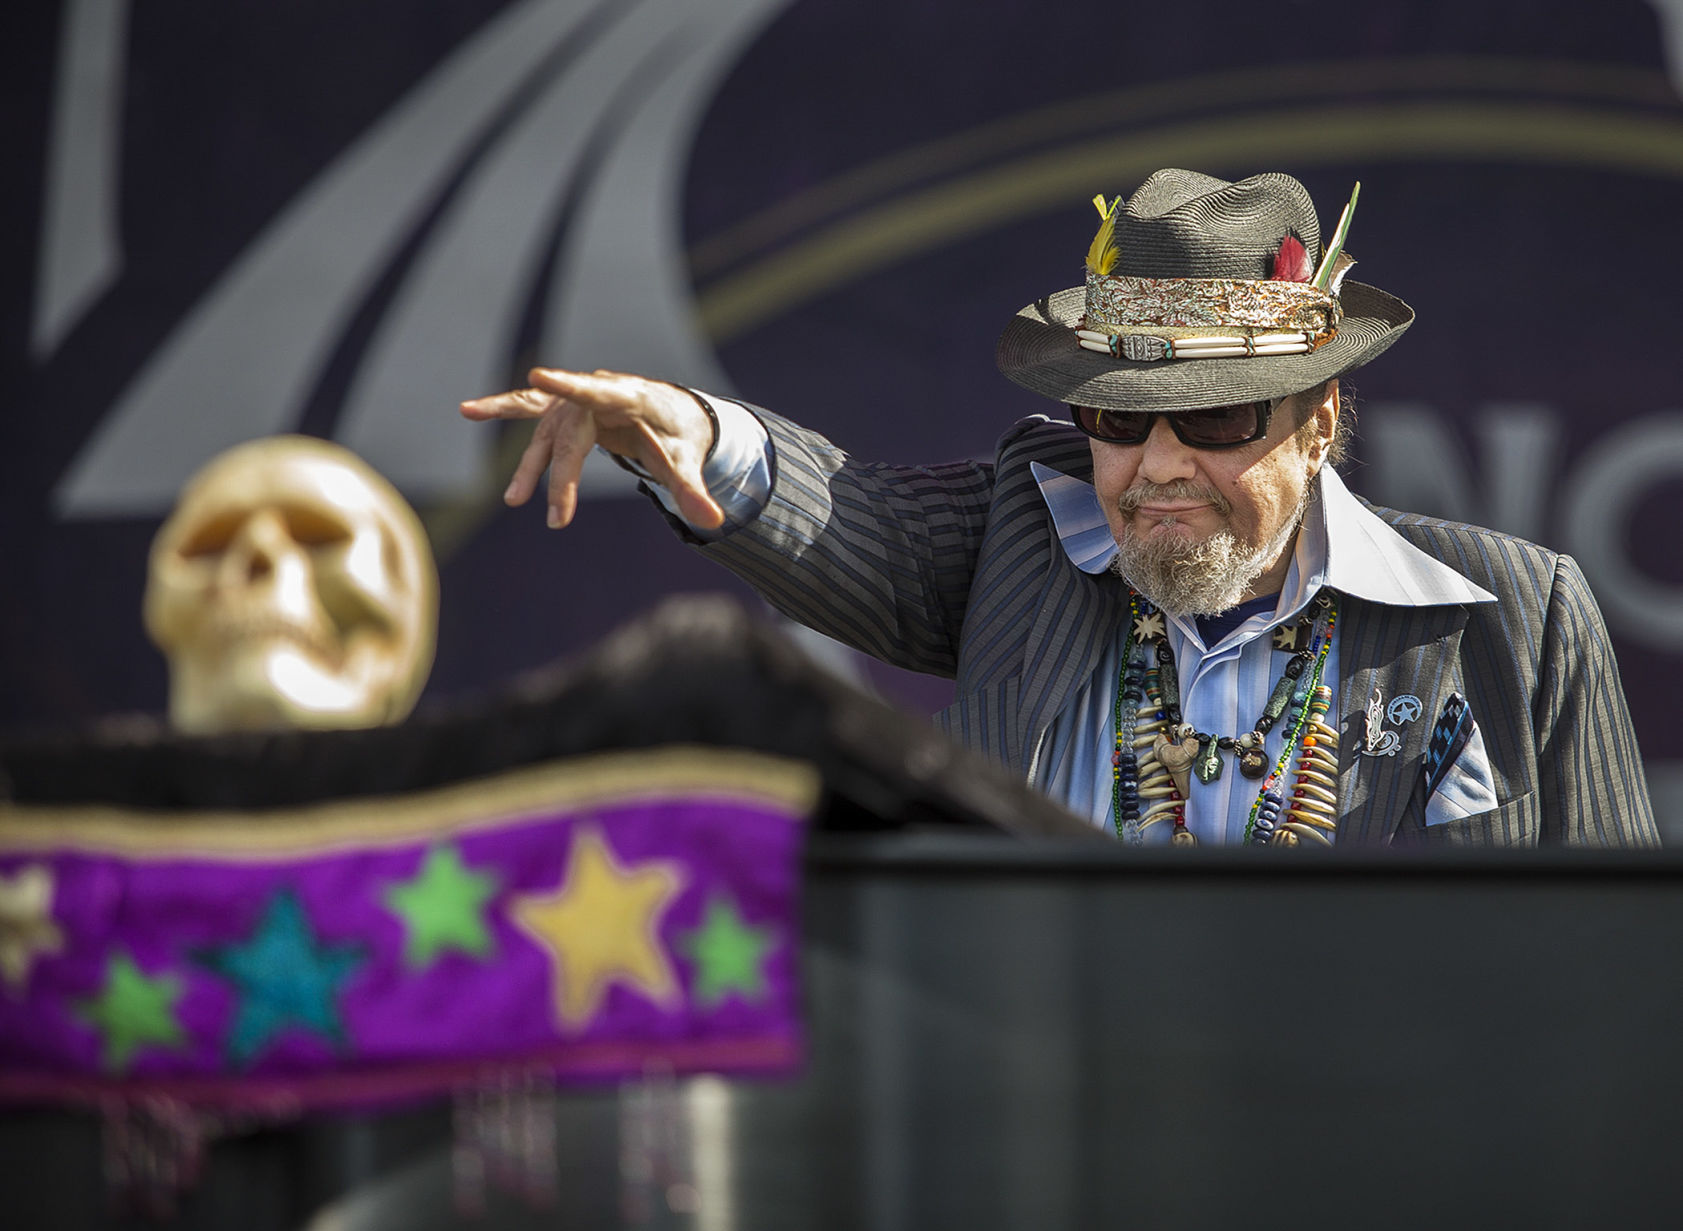 Pianist, singer Mac 'Dr. John' Rebennack, an icon of New Orleans music, has died at 77